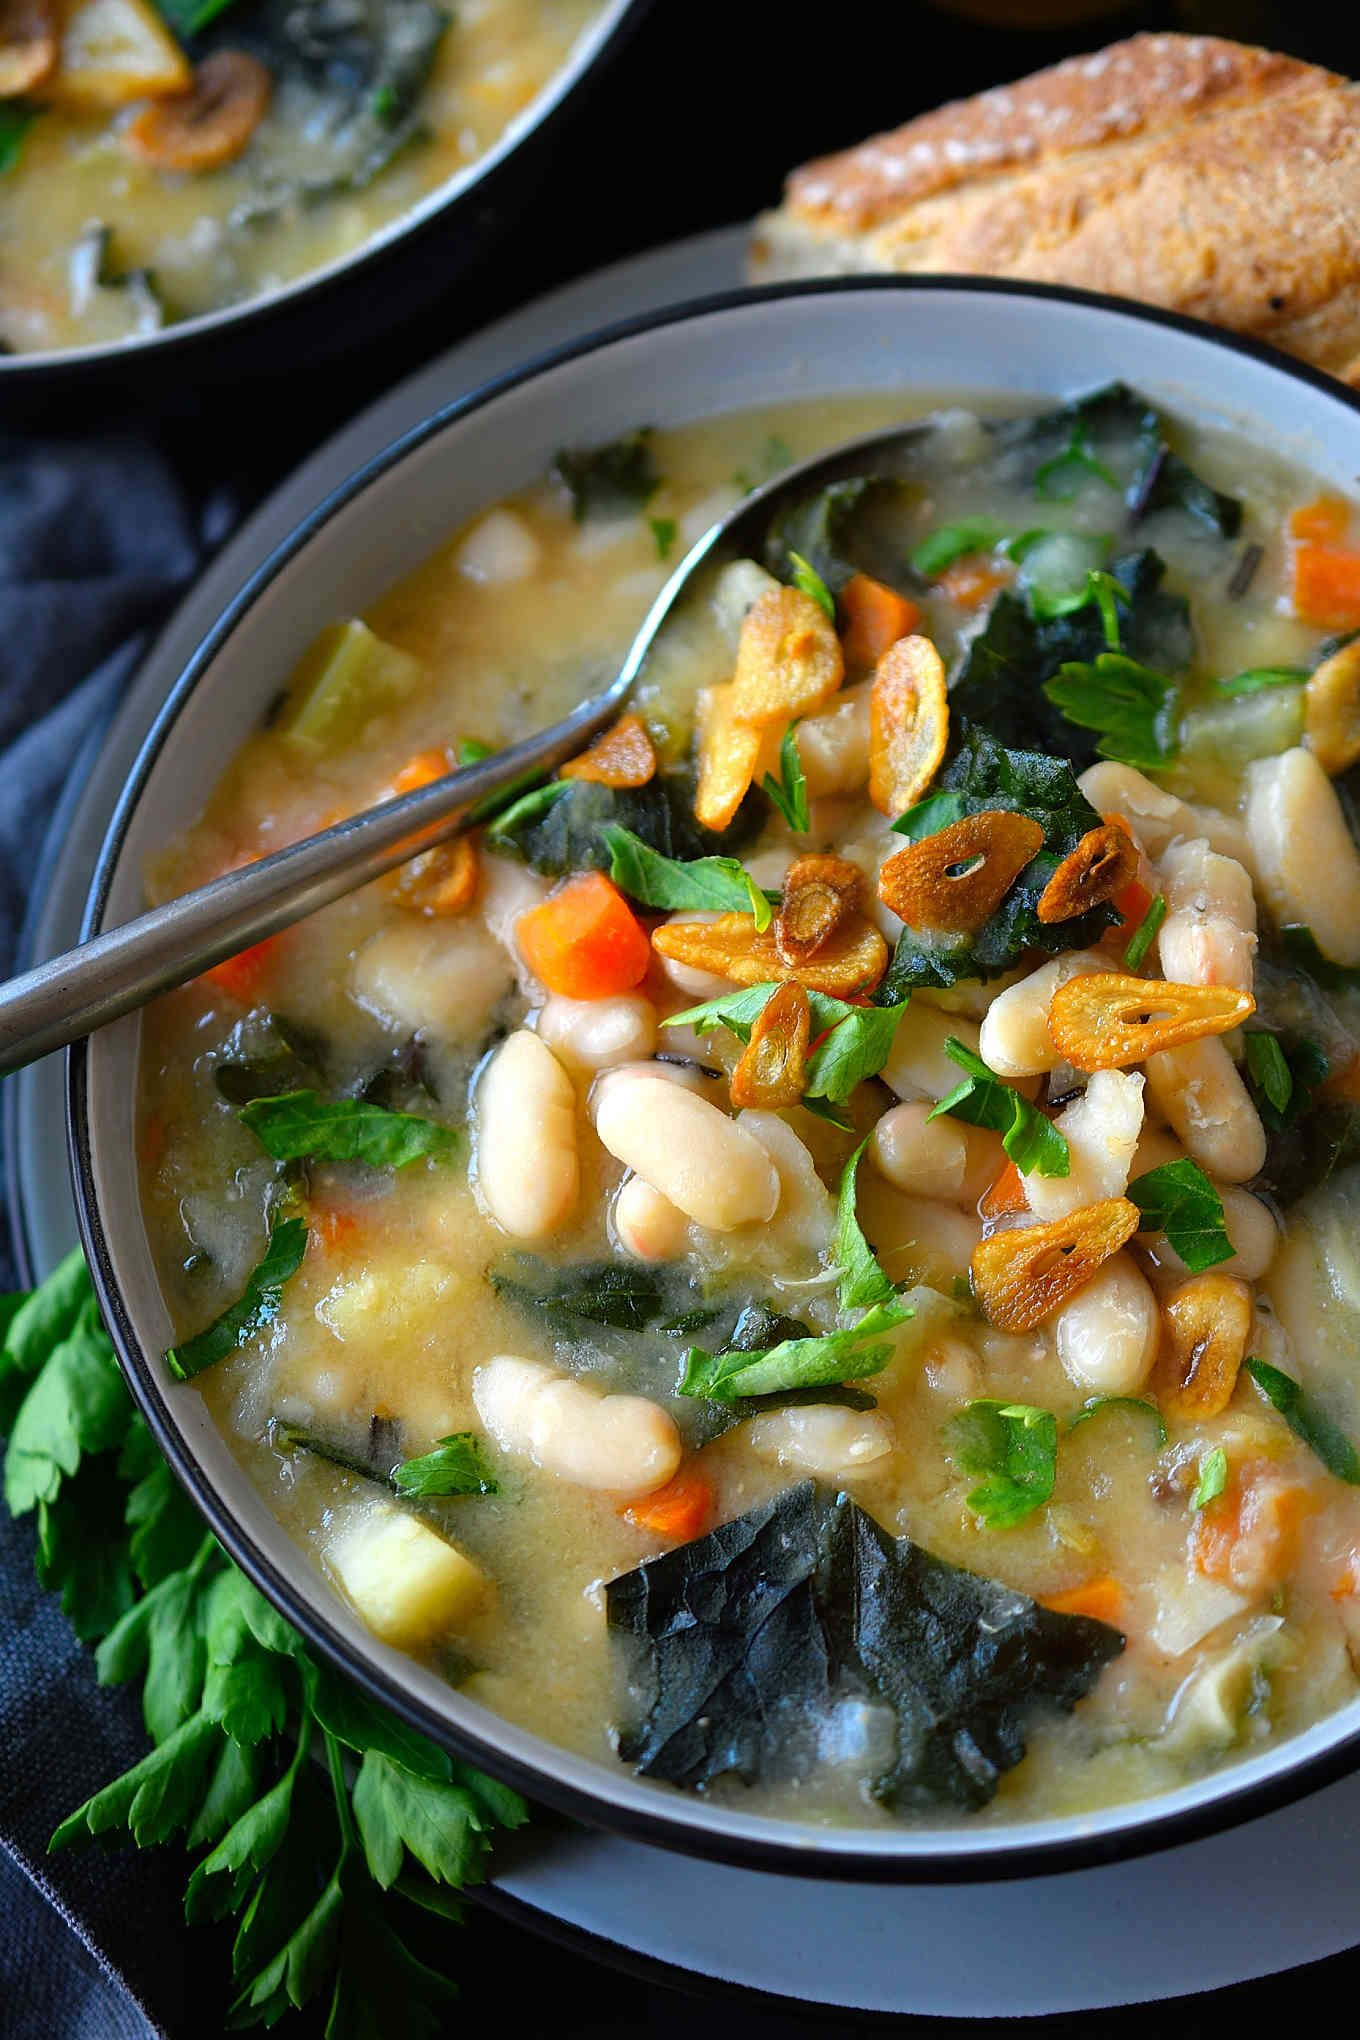 Watch Kale and White Bean Soup video